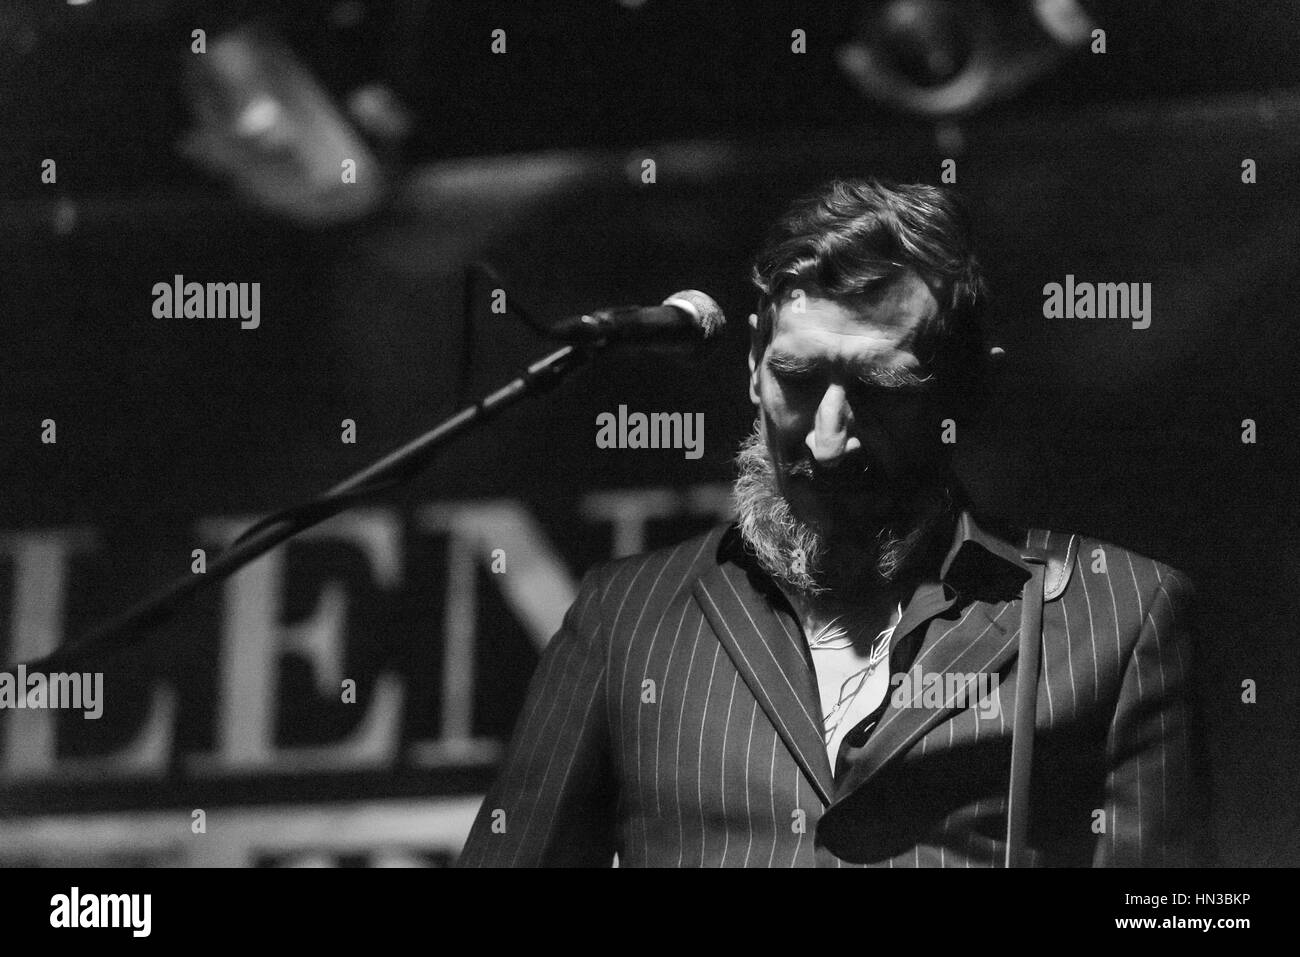 Bergamo, Italy 27 January 2017. Italian indie rock band Marlene Kuntz (Onorate il vile tour) perform at music club Stock Photo